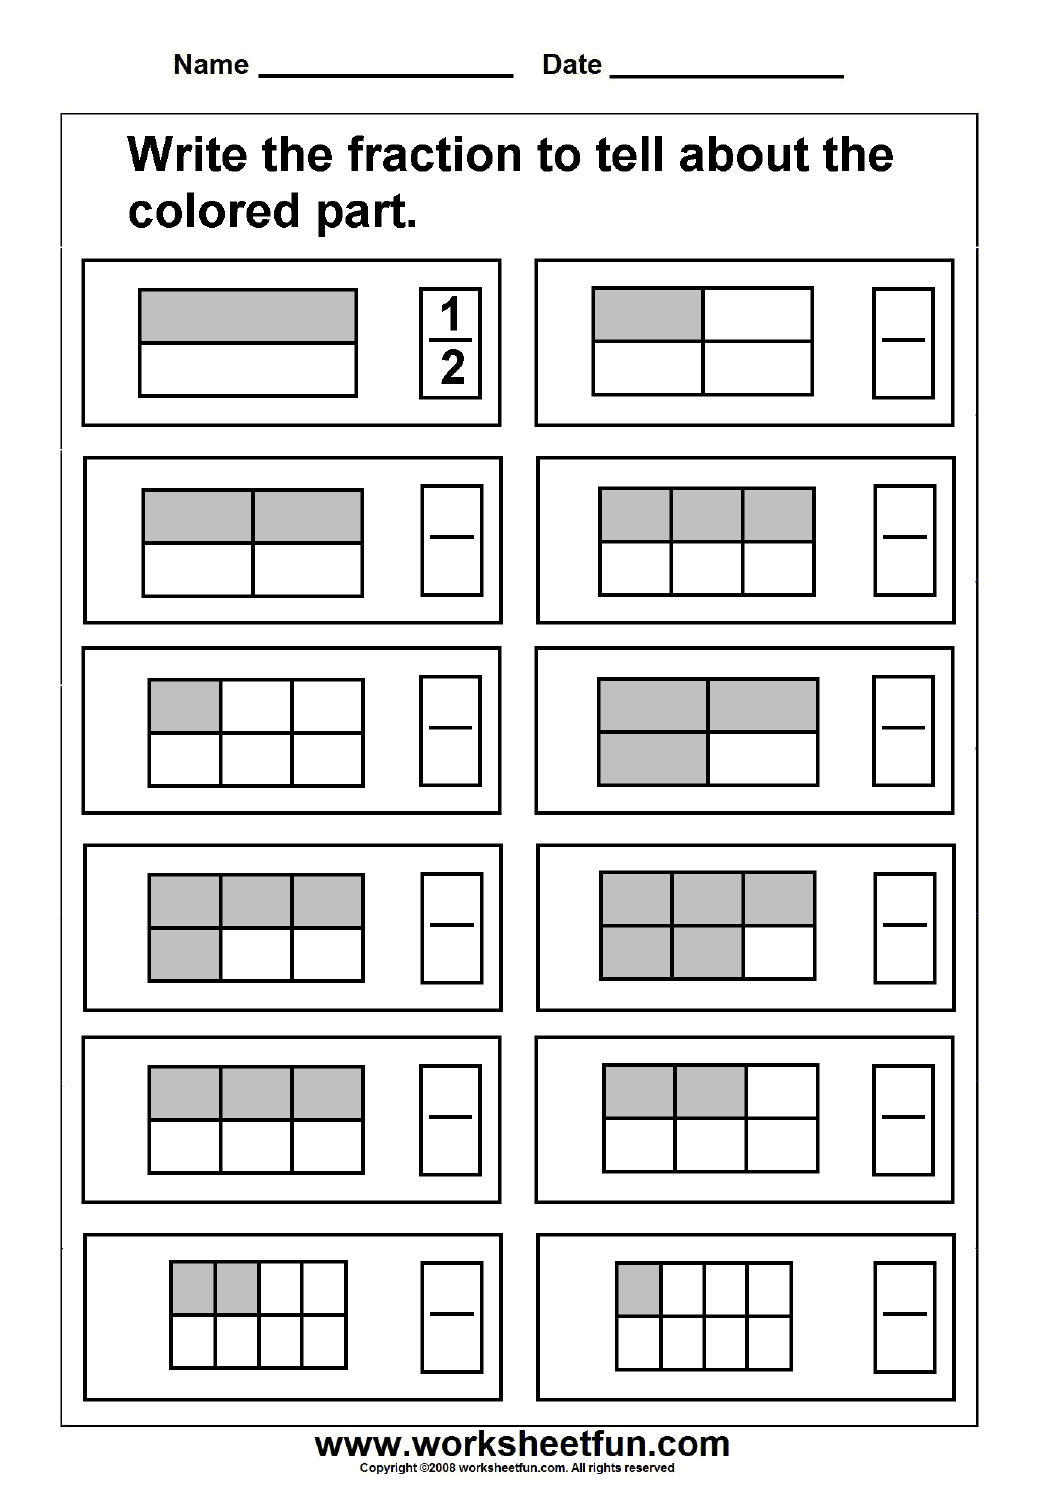 Fraction Model FREE Printable Worksheets Worksheetfun – Free Fraction Worksheets for Grade 3